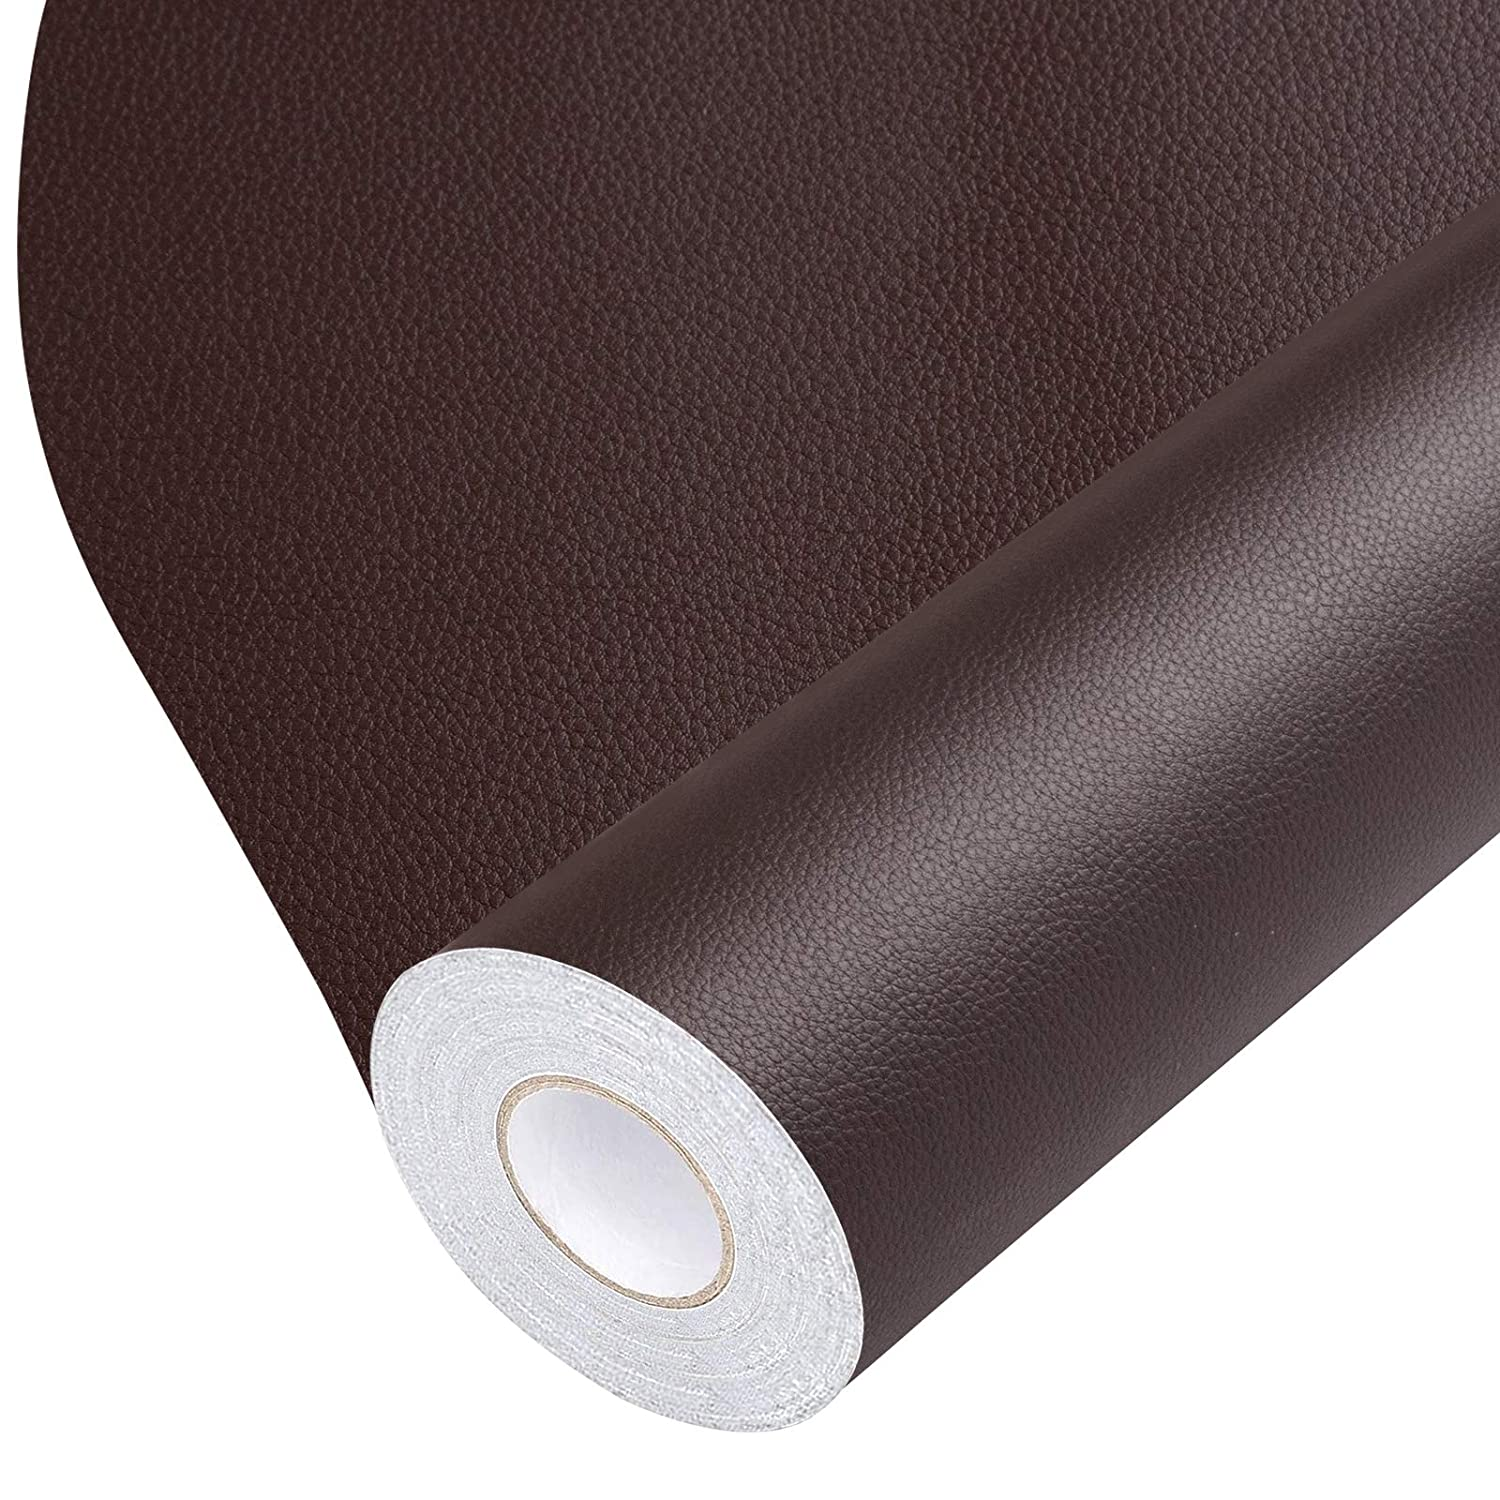 Leather Repair Tape, Self-Adhesive Leather Repair Patch for Handbags,Furniture, Drivers Seat, Sofas, Car Seats (Brown, 17X79 inch)